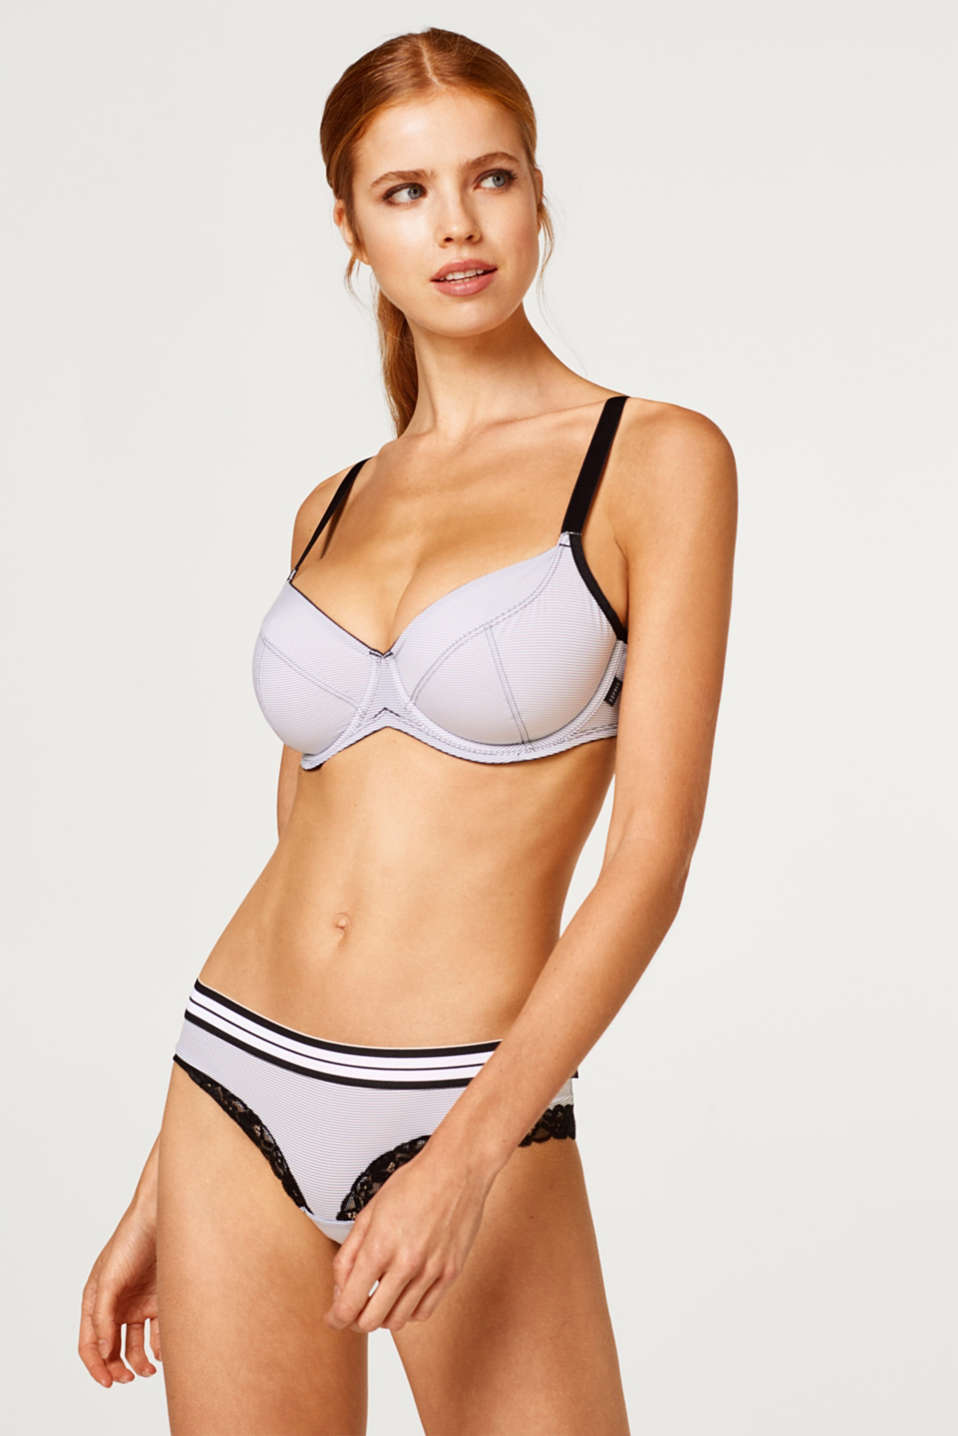 Esprit - unpadded underwire bra for large cup sizes with stripes